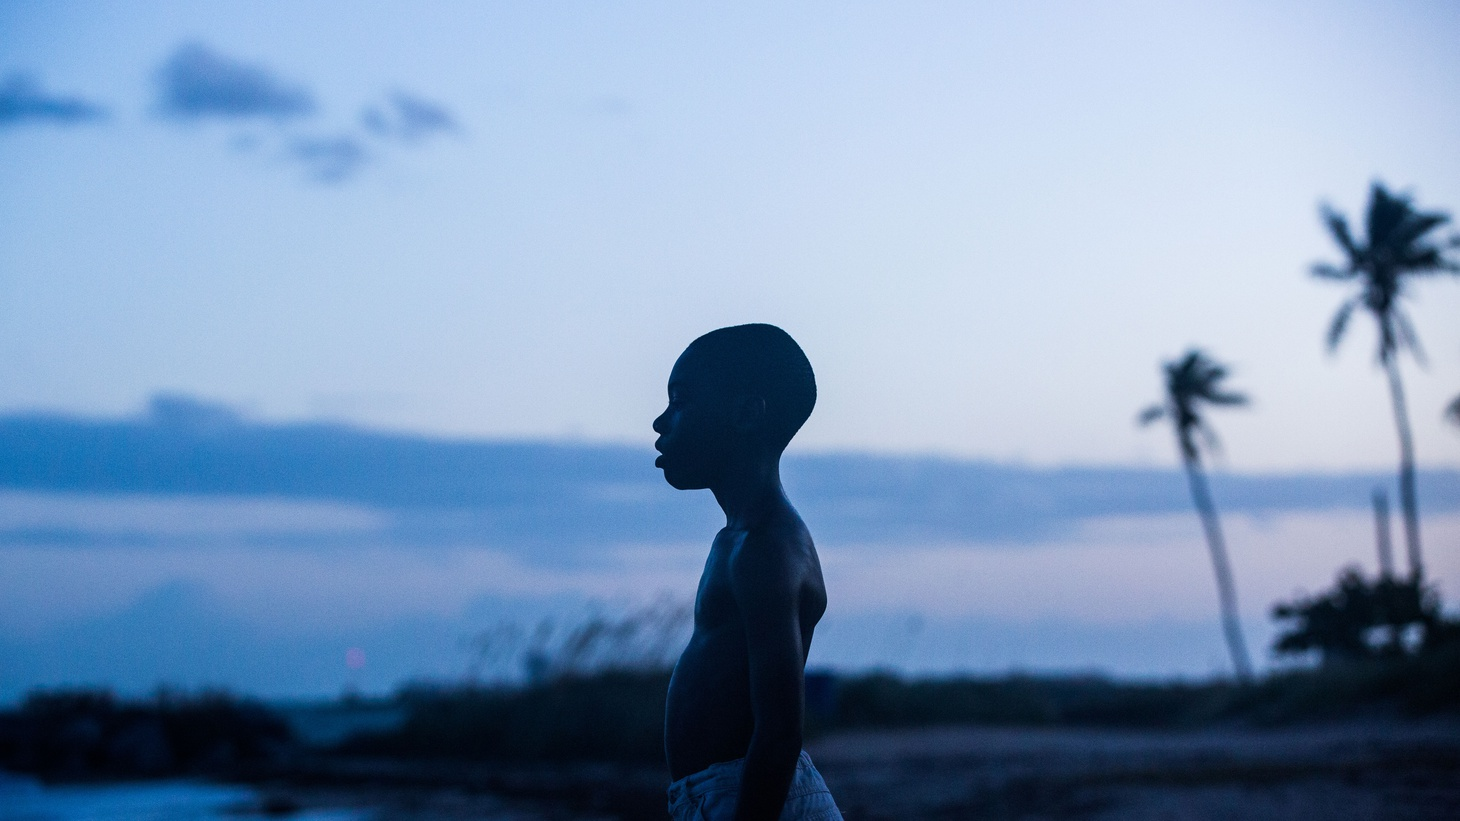 Director Barry Jenkins and producer Adele Romanski tell us about making their awards-contender Moonlight, about a gay African American boy growing up surrounded by poverty and drugs in Miami.